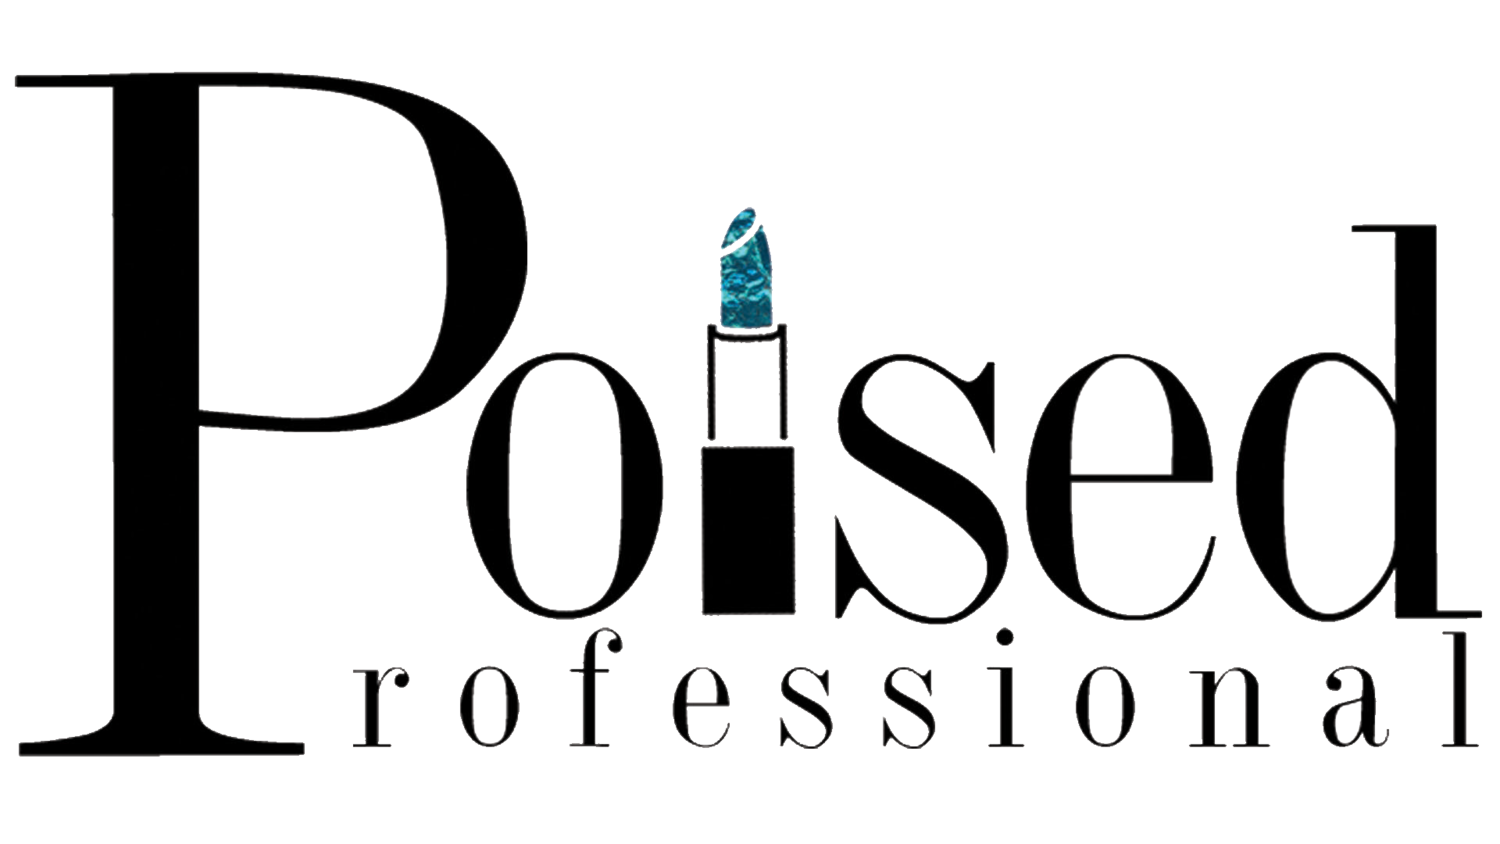 Poised Professional, LLC